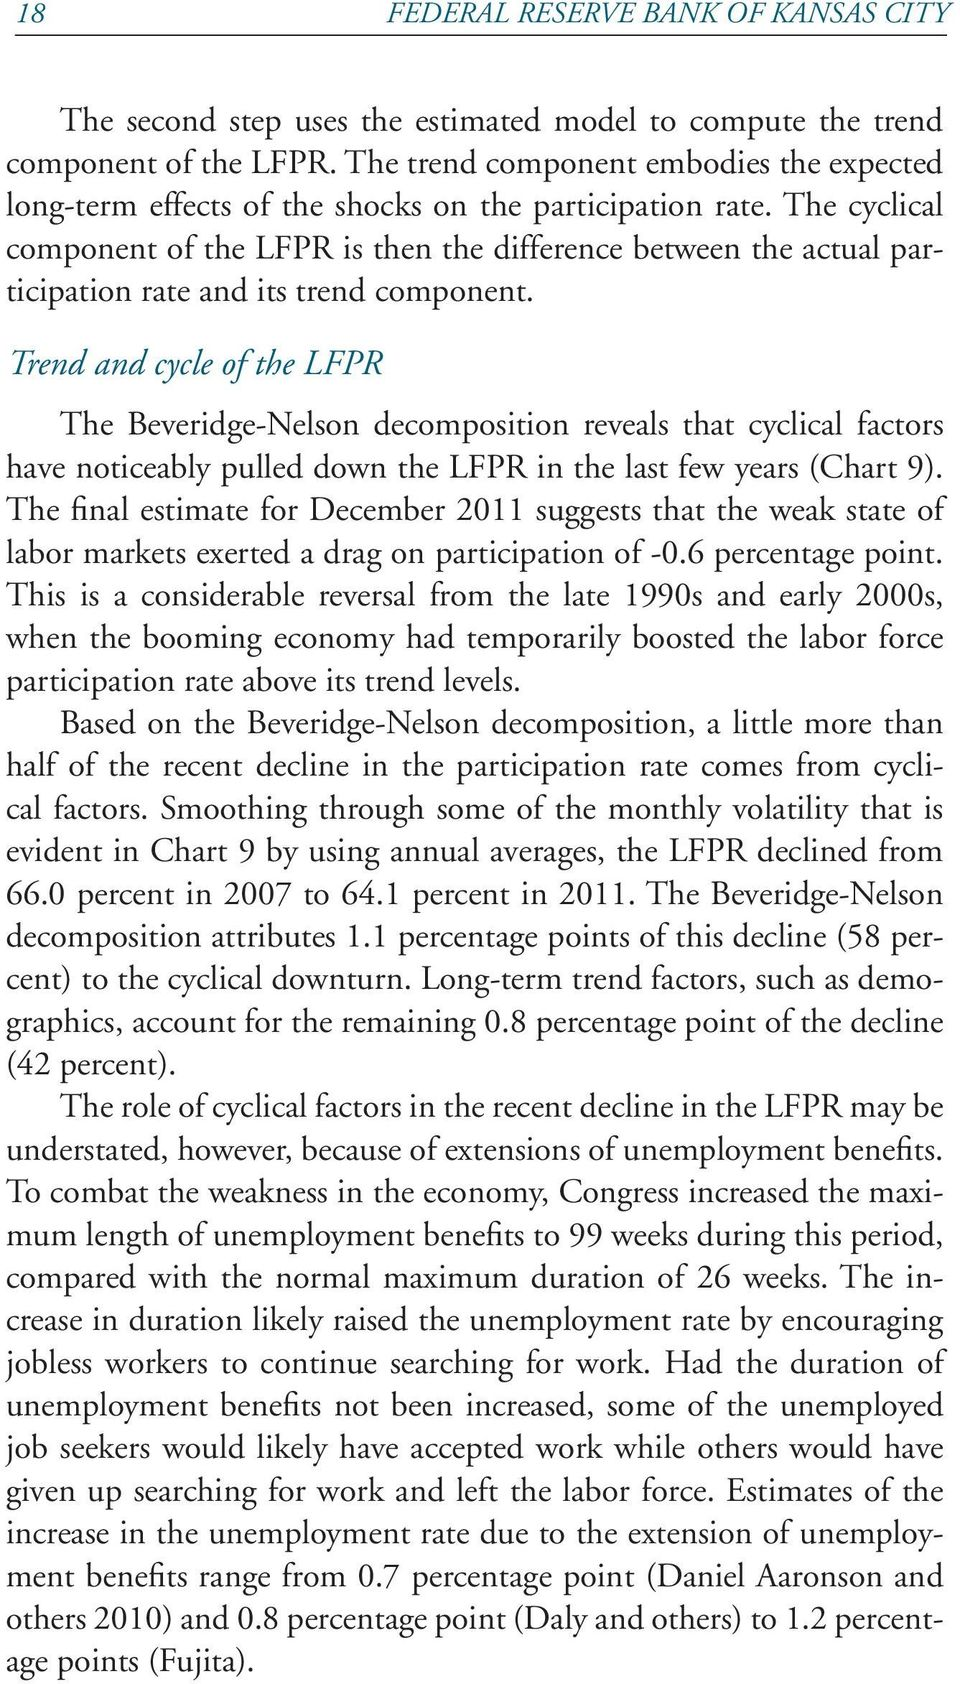 The cyclical component of the LFPR is then the difference between the actual participation rate and its trend component.